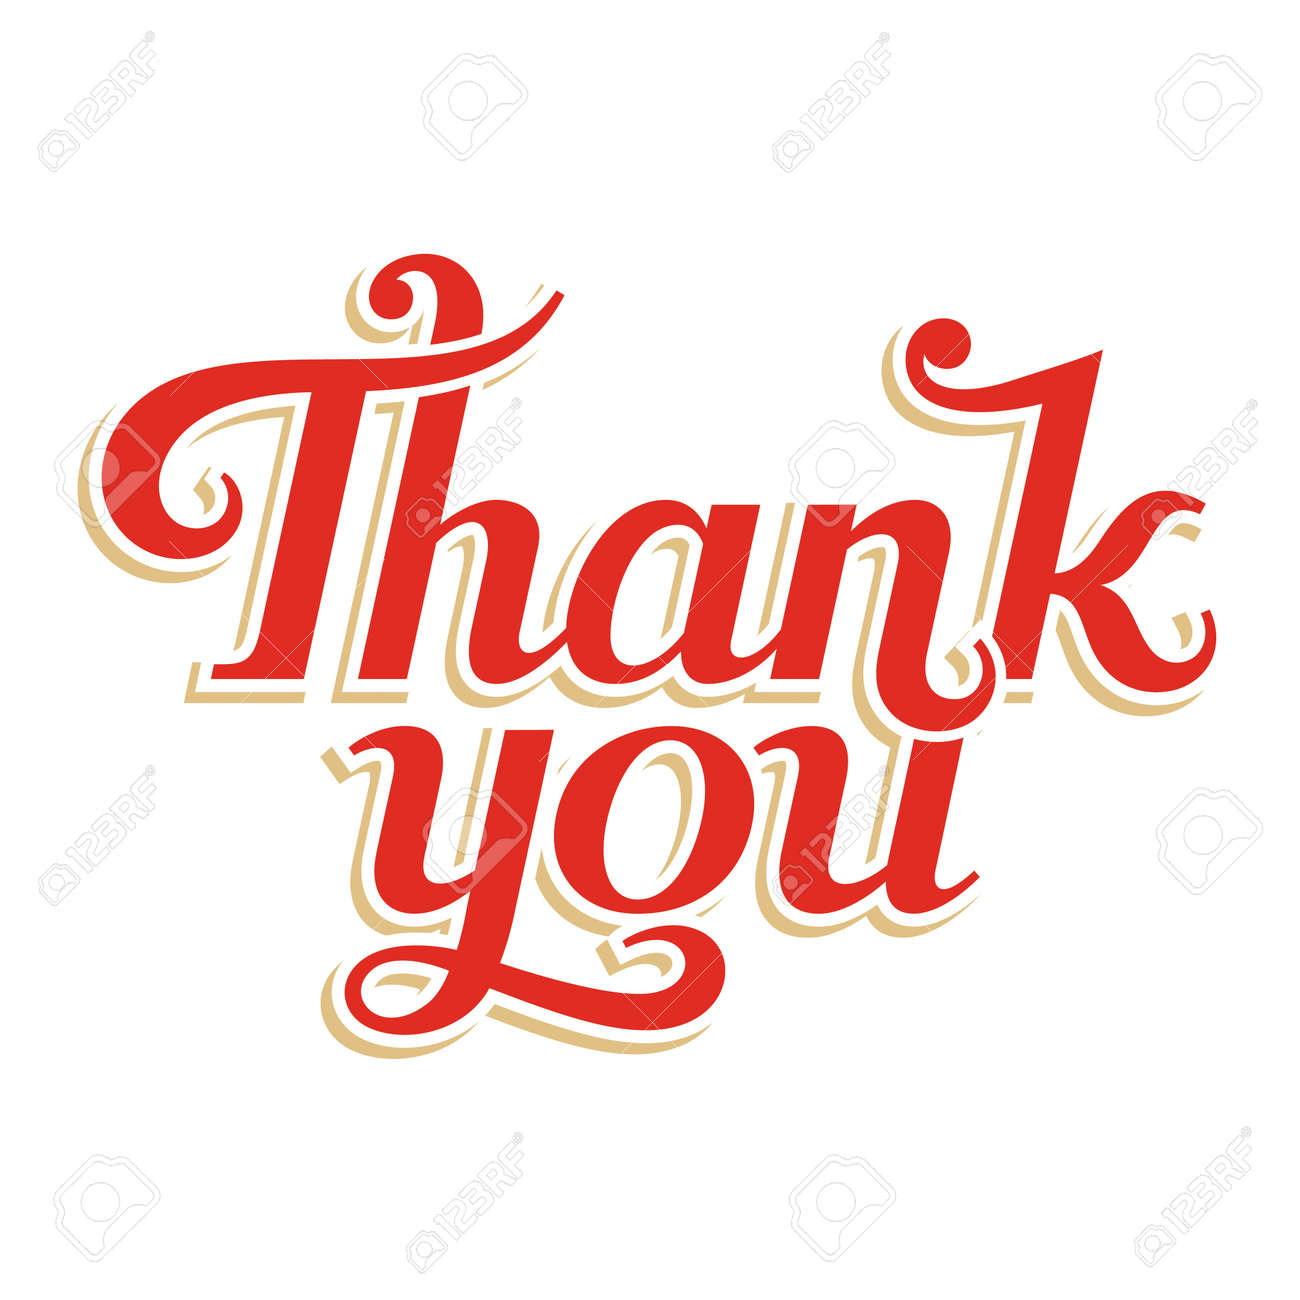 Thank You hand lettering, vector inscription - 19533578